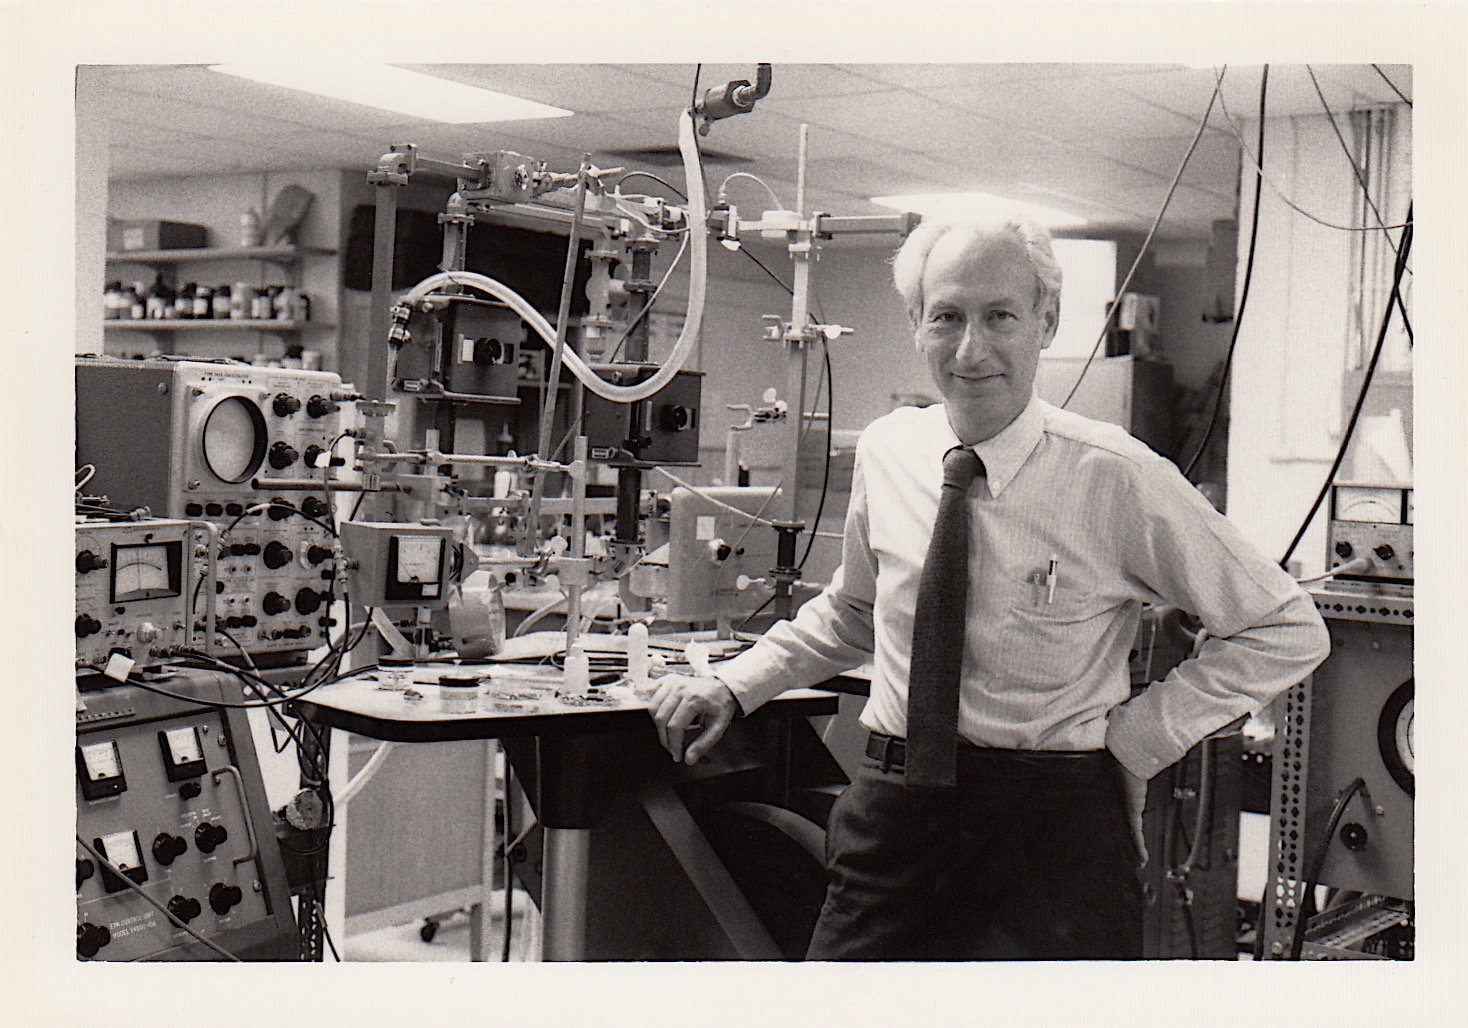 Art Brill in his lab